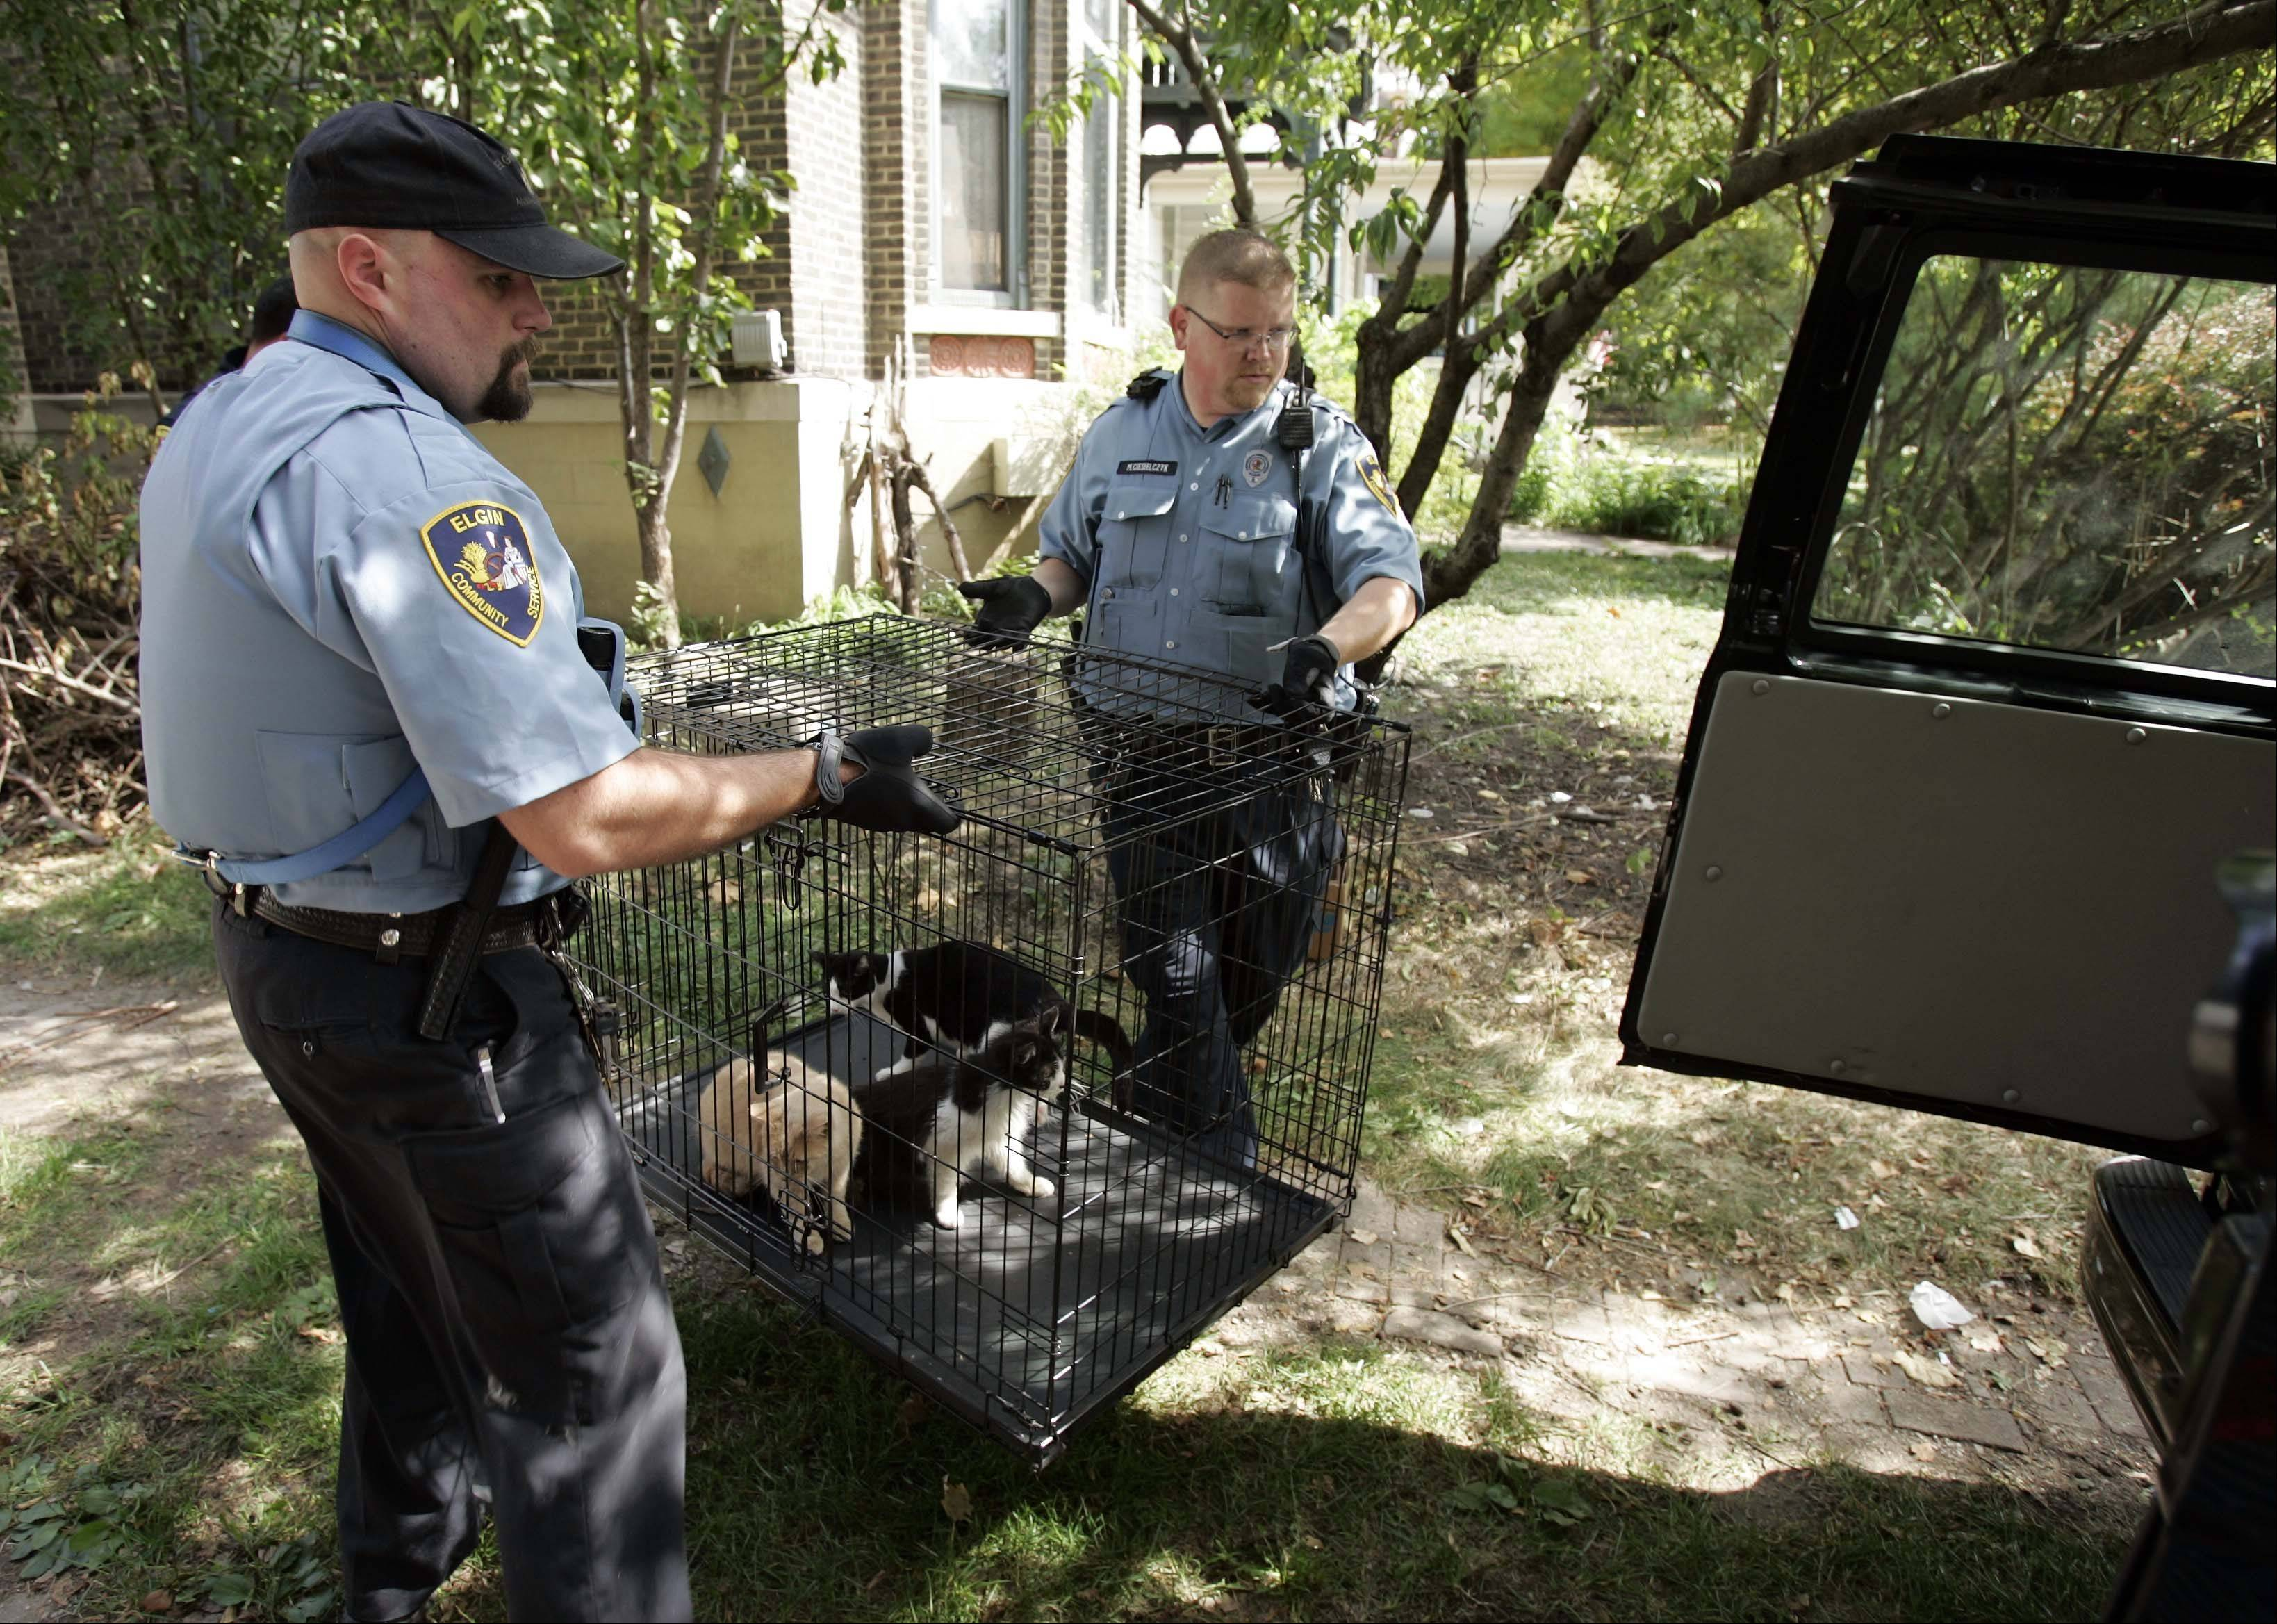 Elgin animal control officers James Rog, left, and Matt Ciesielczyk load a crate with three cats that were saved during an investigation where Elgin police and animal control officers search the property on the 200 block of Villa Street in Elgin. More cats still have to be chased down today to ensure they're OK.